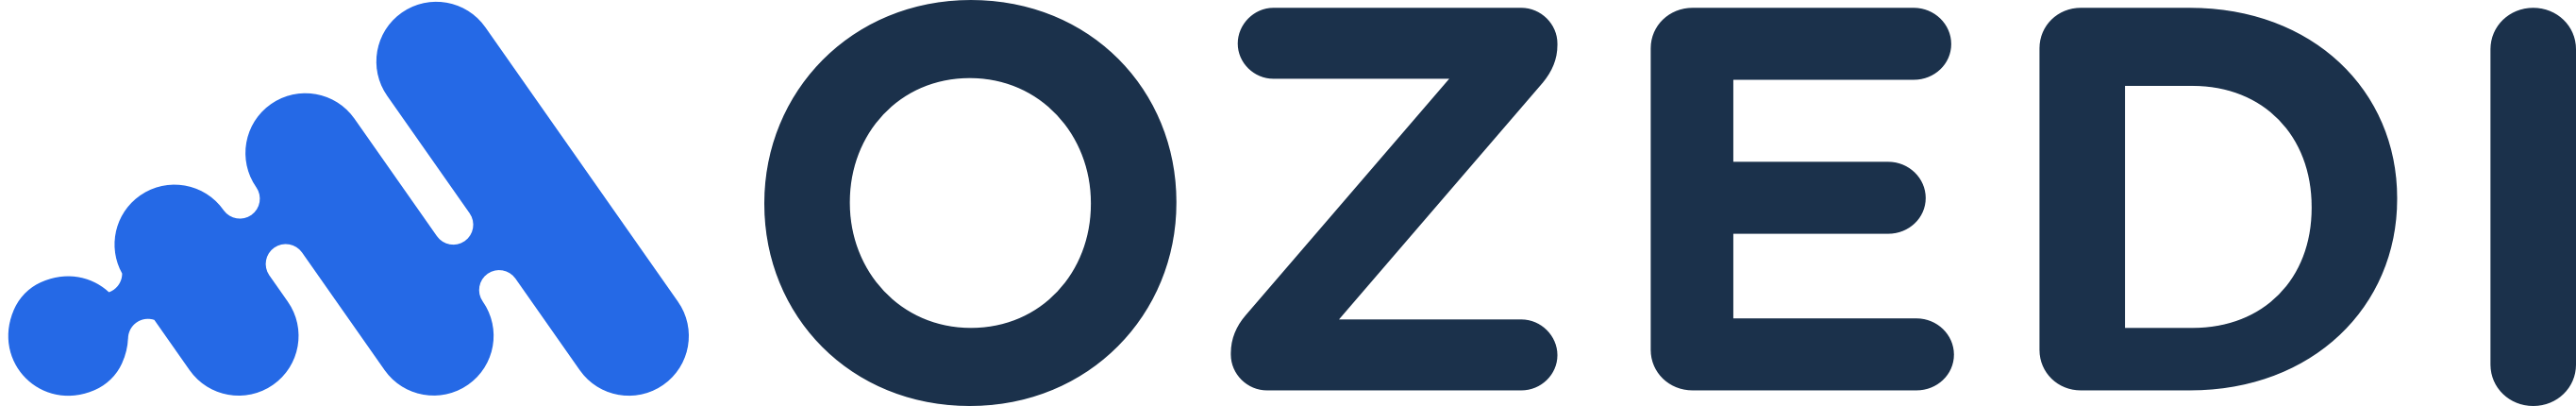 Ozedi Holdings Pty Ltd